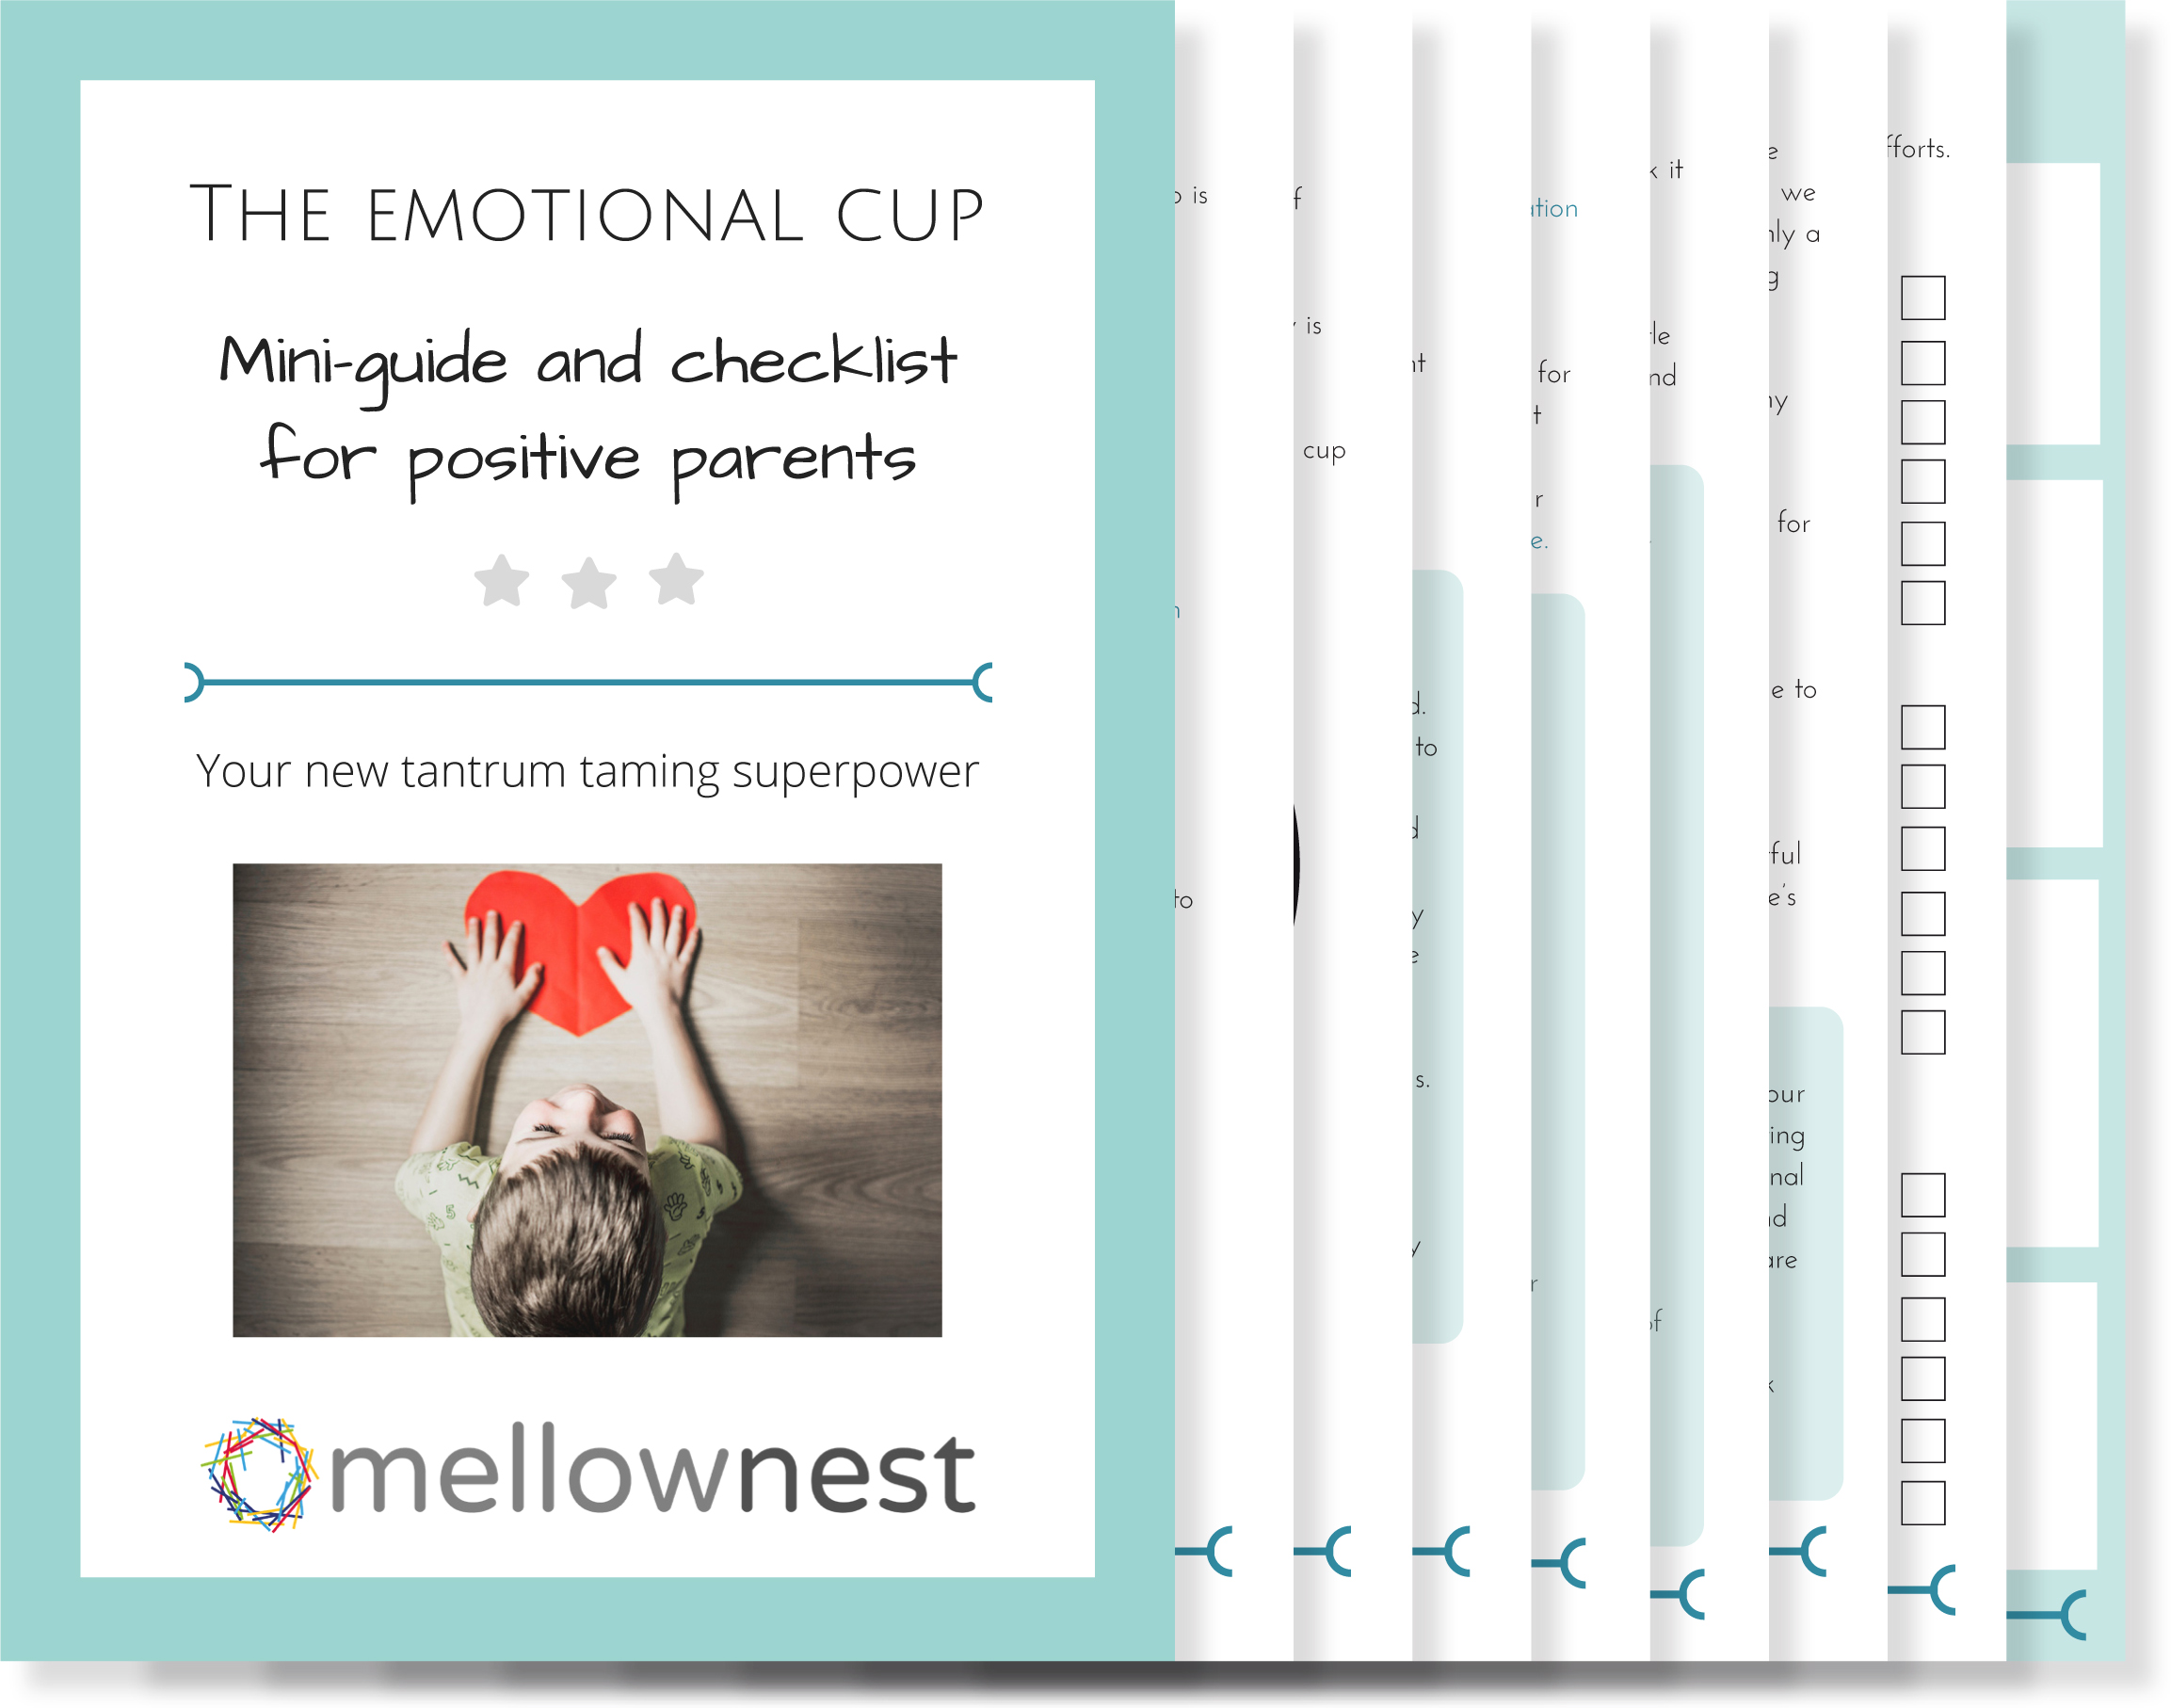 Download the FREE mini-guide and checklist. - In this short and simple guide you'll learn:Exactly what the emotional cup theory is and why it matters to YOUR child's tantrums.How real parents have used the theory for a happier family life.What your child's key tantrum triggers are.How to refill those little cups and have fewer tantrums!BONUS! Printable plan for you to put into action.